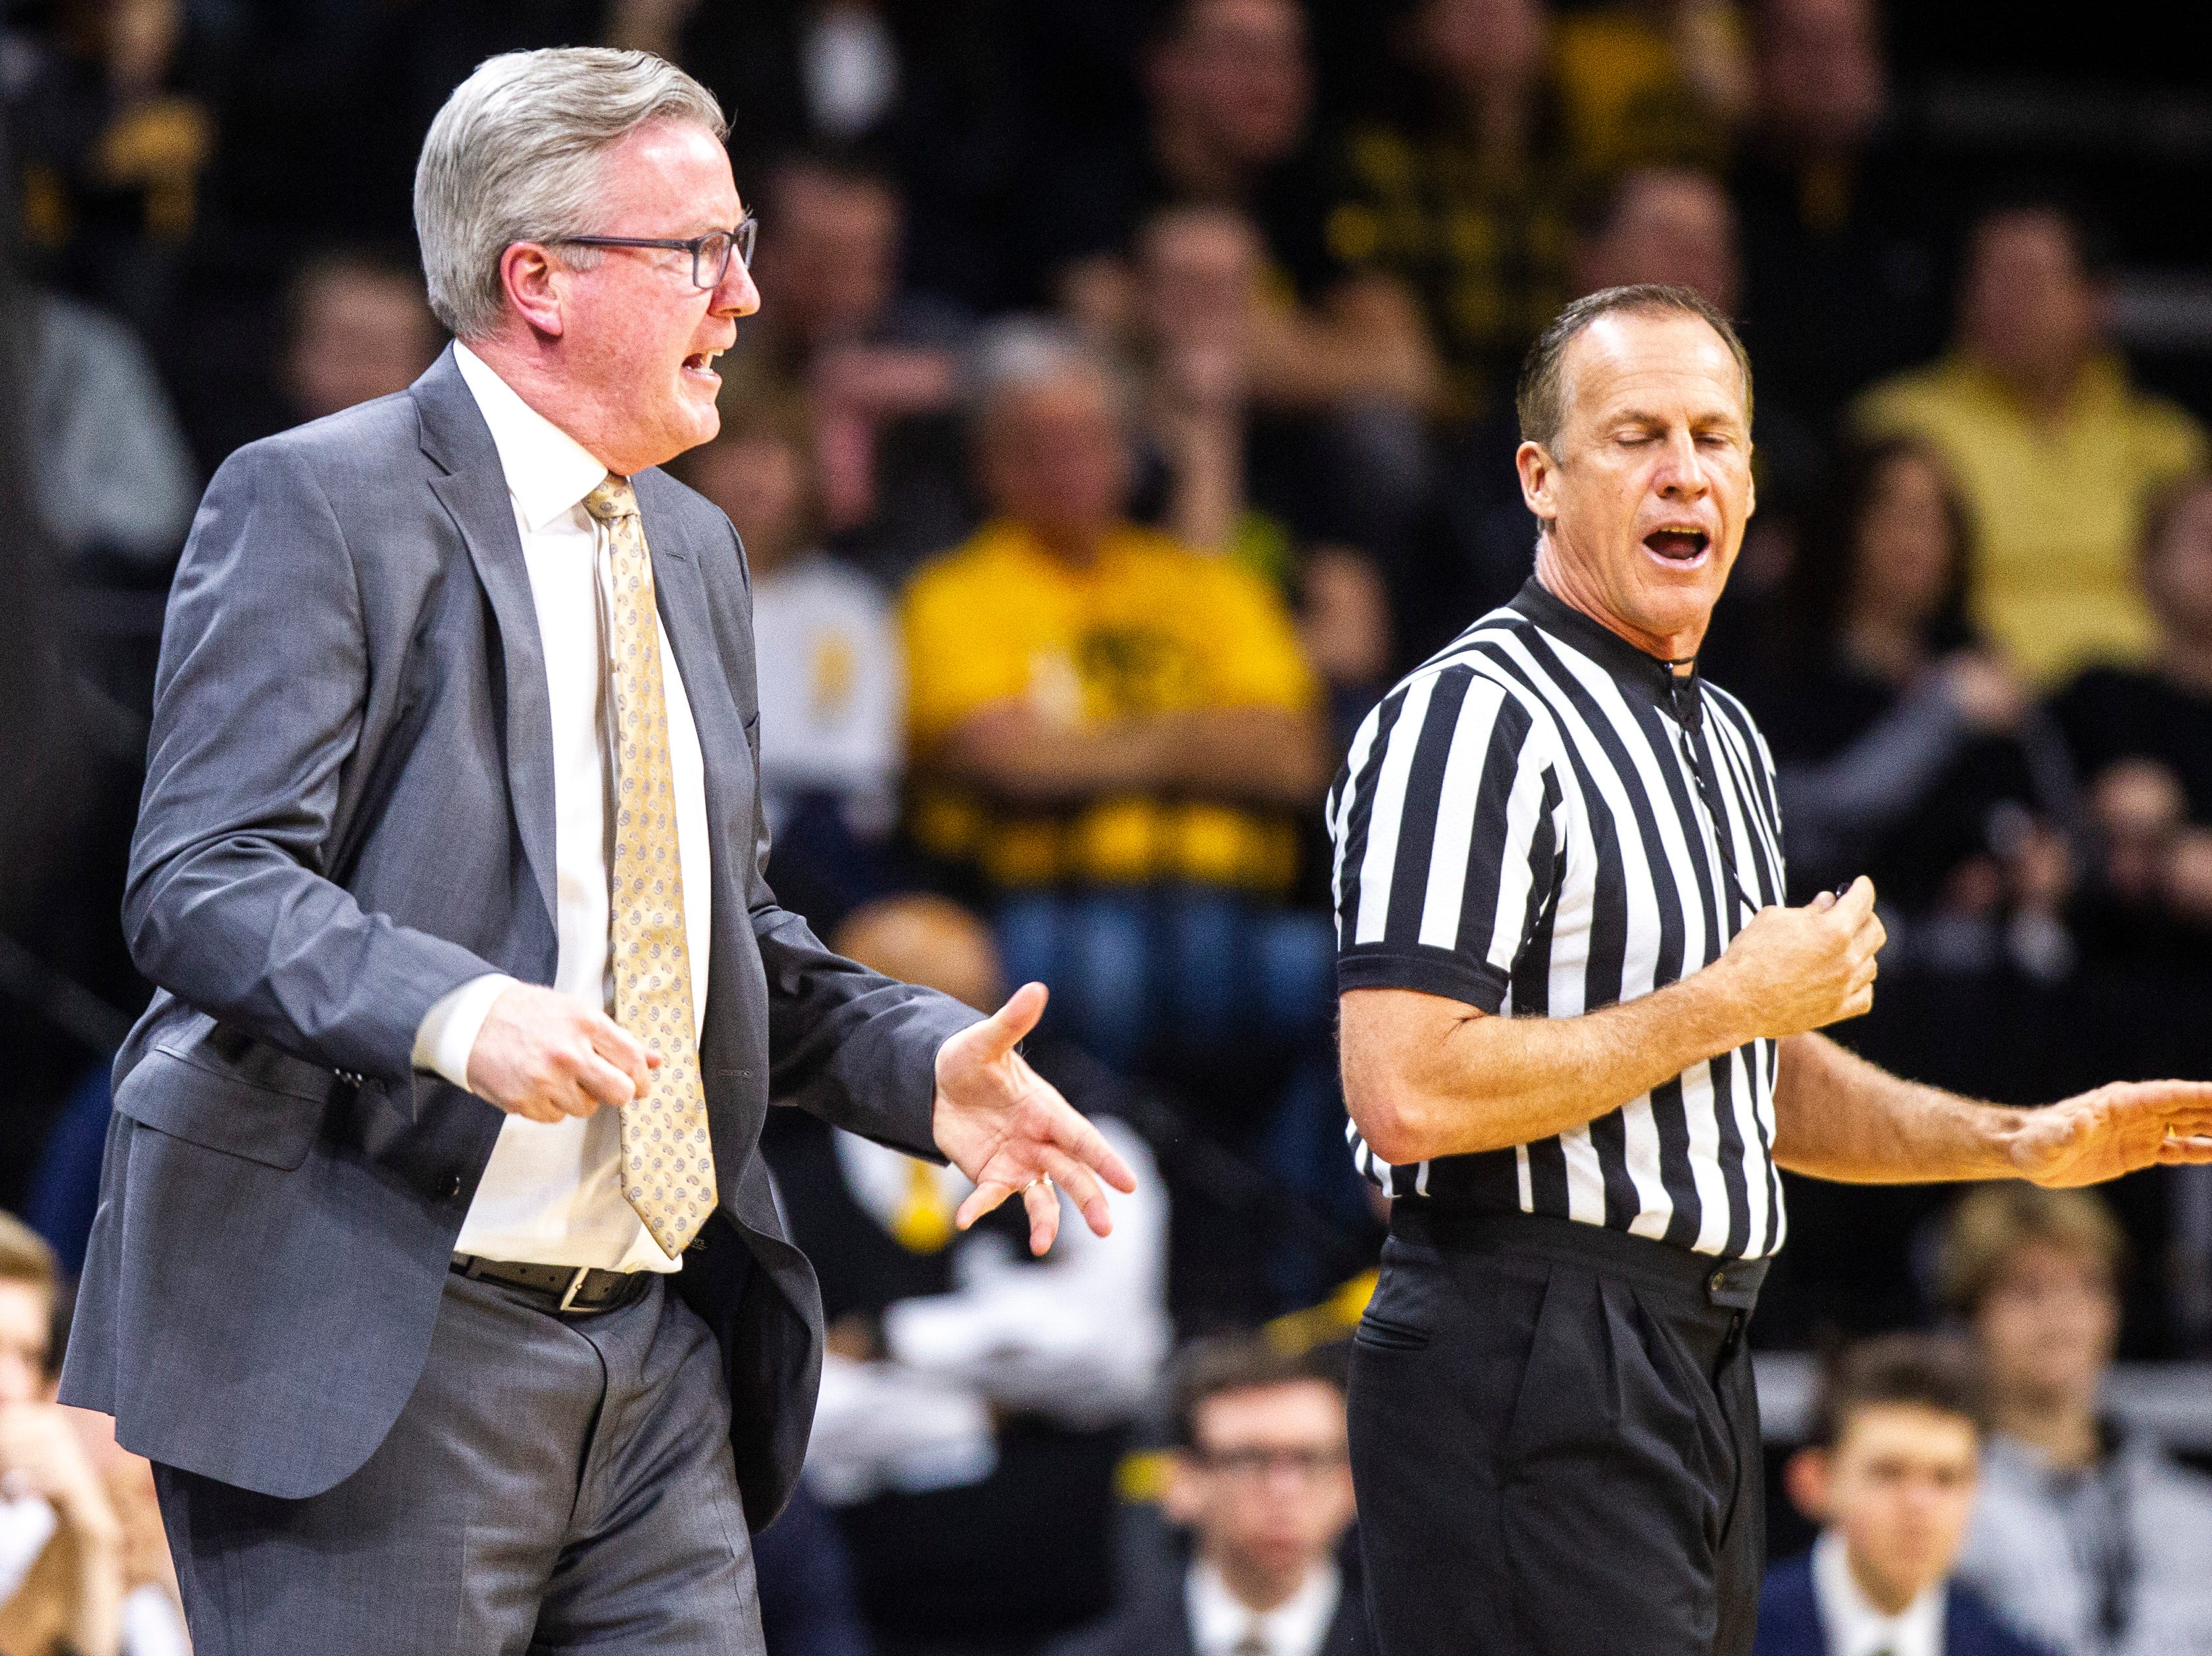 Iowa men's basketball head coach Fran McCaffery reacts to Iowa guard Jordan Bohannon (not pictured) getting called for a foul during a NCAA Big Ten Conference men's basketball game on Tuesday, Feb. 19, 2019 at Carver-Hawkeye Arena in Iowa City, Iowa.